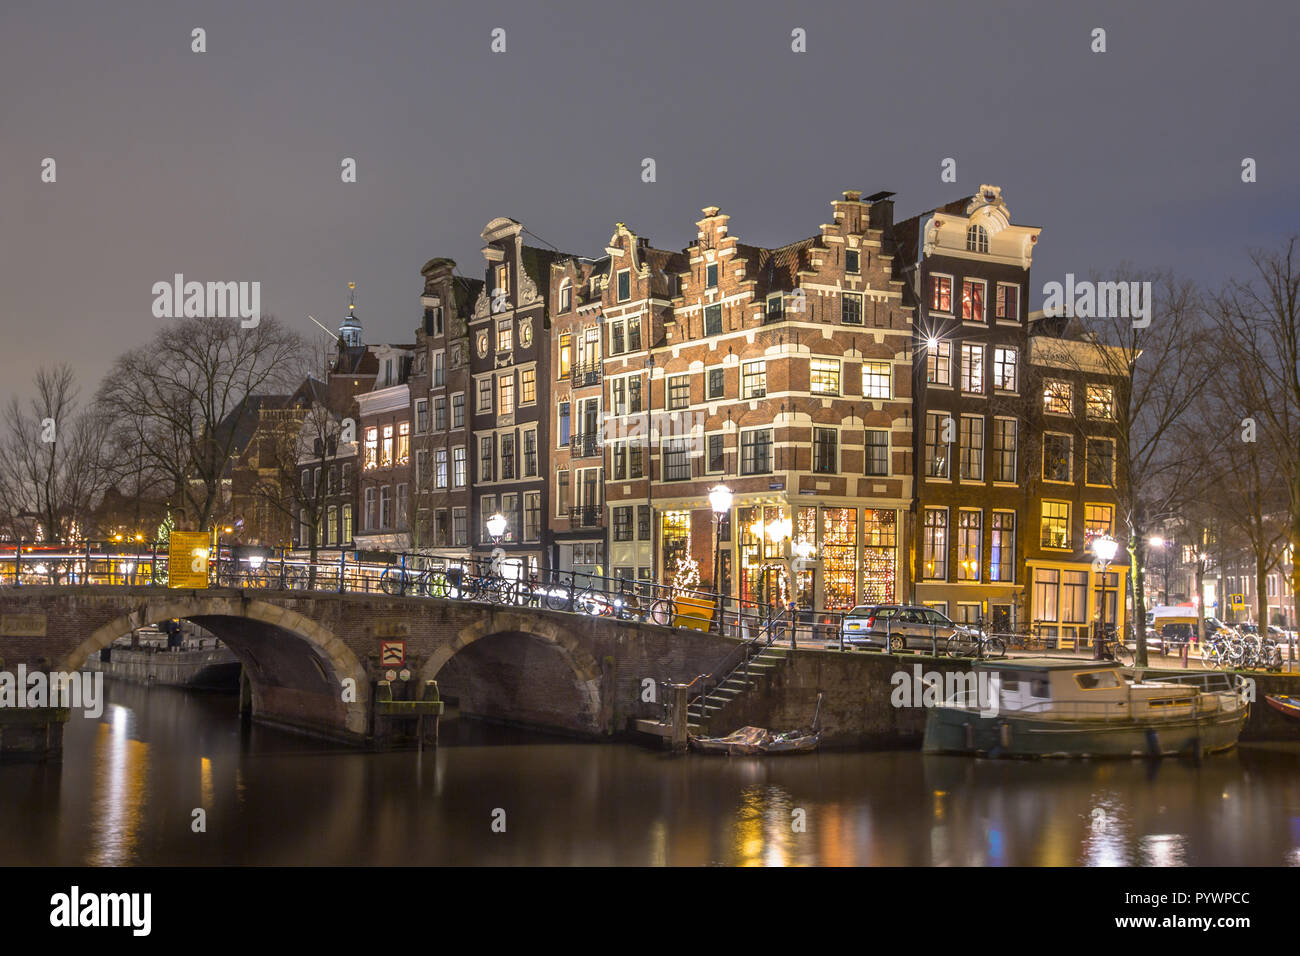 Nightscape of Colorful traditional canal houses on the corner of brouwersgracht and Prinsengracht in the UNESCO World Heritage site of Amsterdam - Stock Image